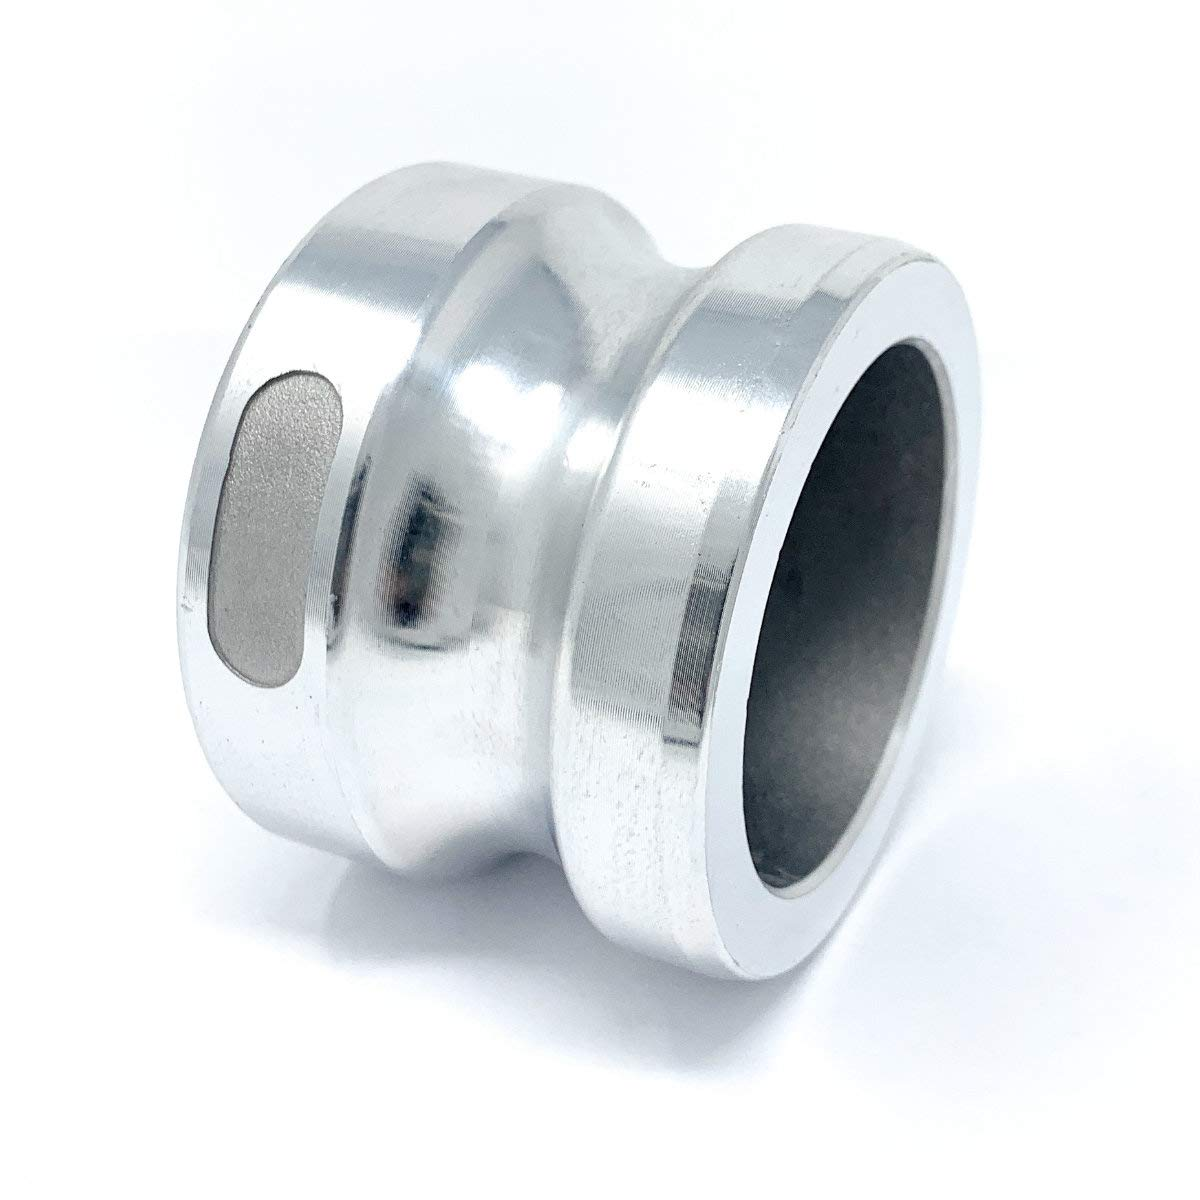 Aluminum CAM-20-DP-AL 2 Male Camlock Dust Plug Type DP Gloxco Cam and Groove Fitting